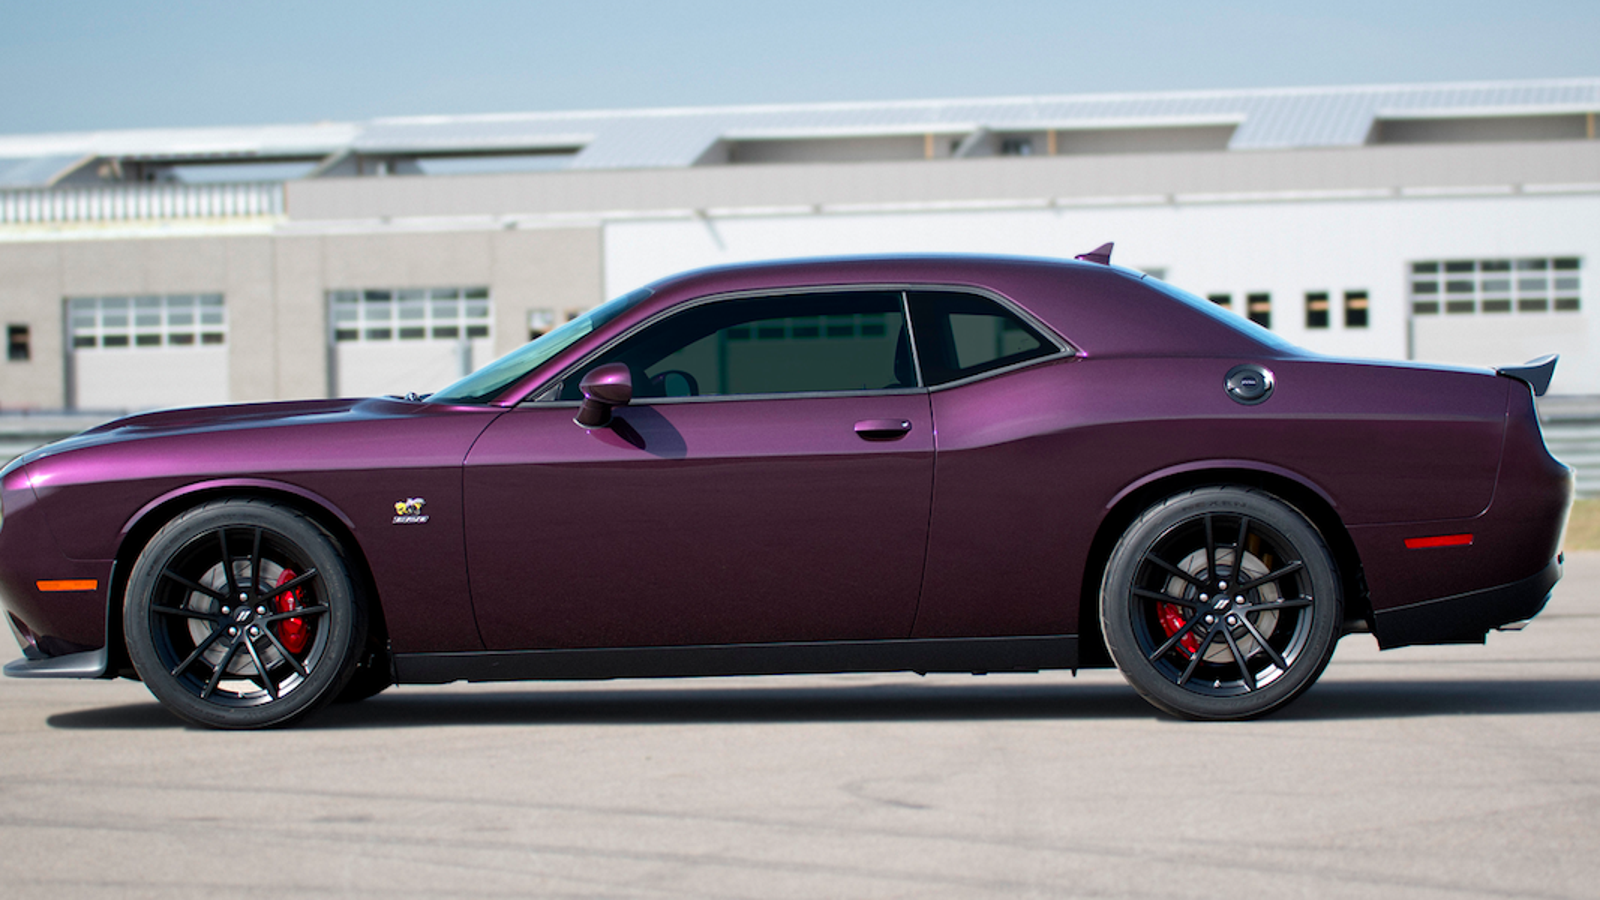 the 2019 dodge challenger r  t scat pack 1320 adds demon tech to a cheaper challenger